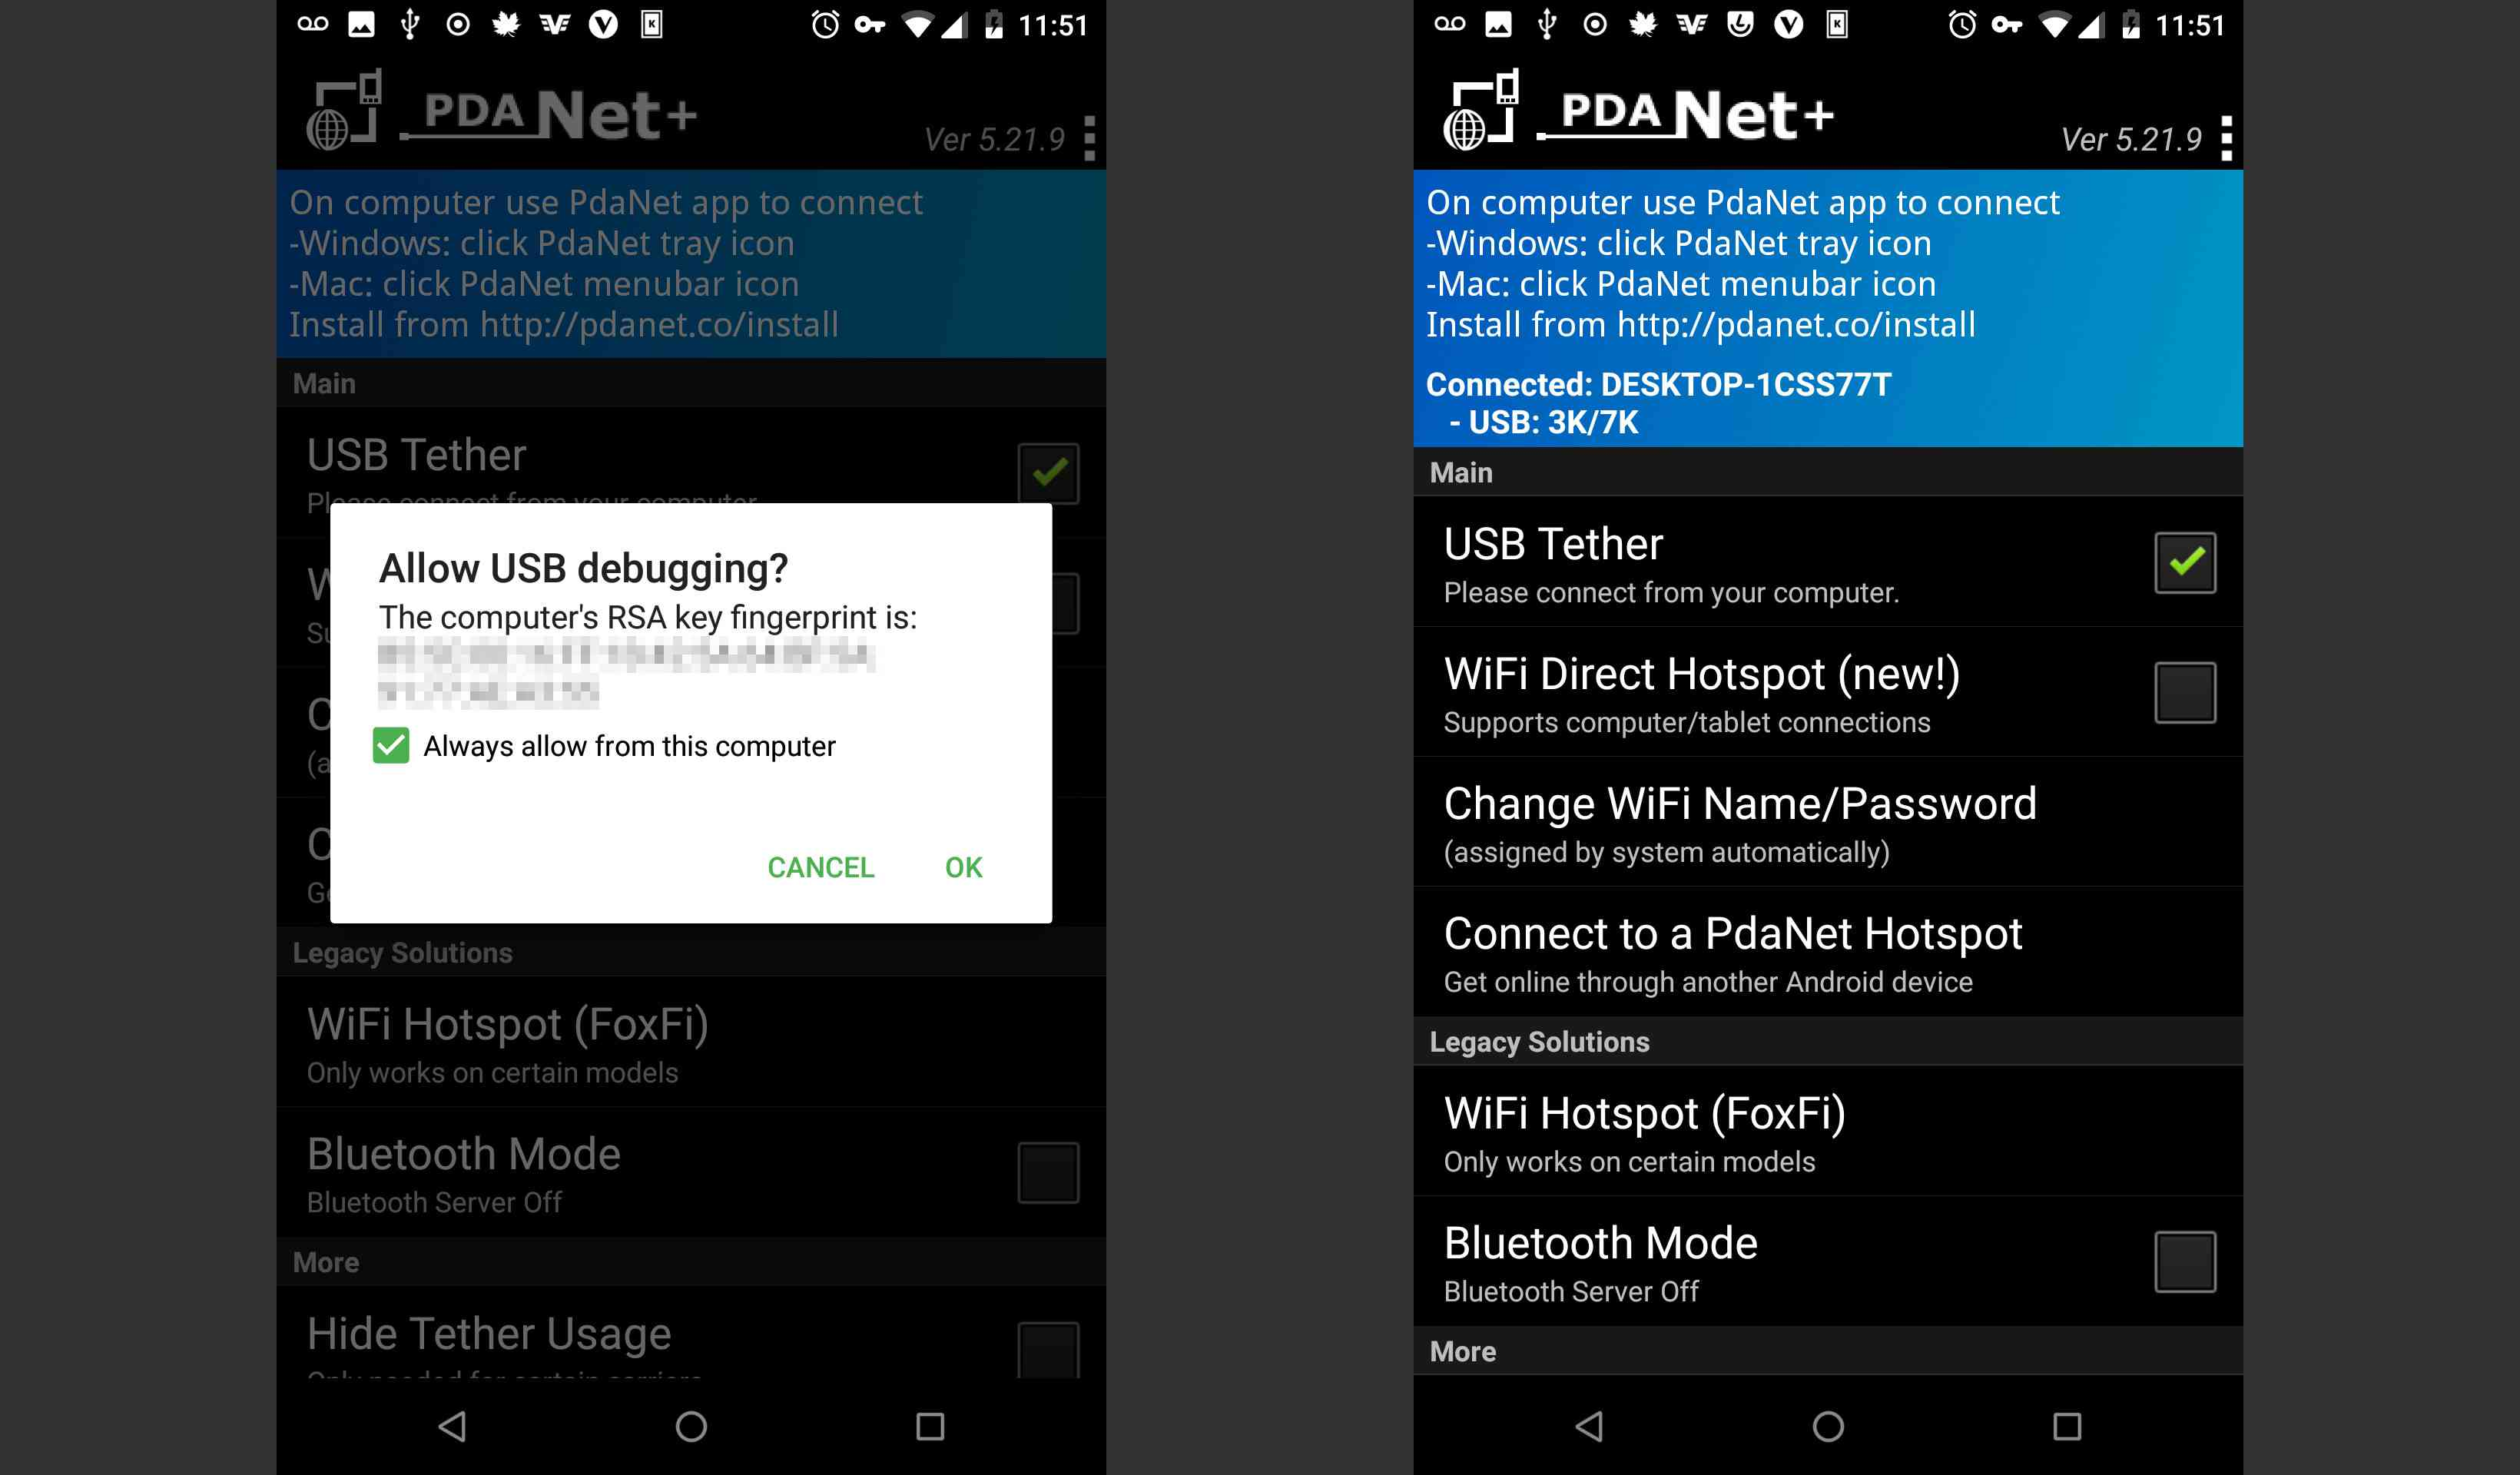 How to Tether Your Smartphone with PdaNet+